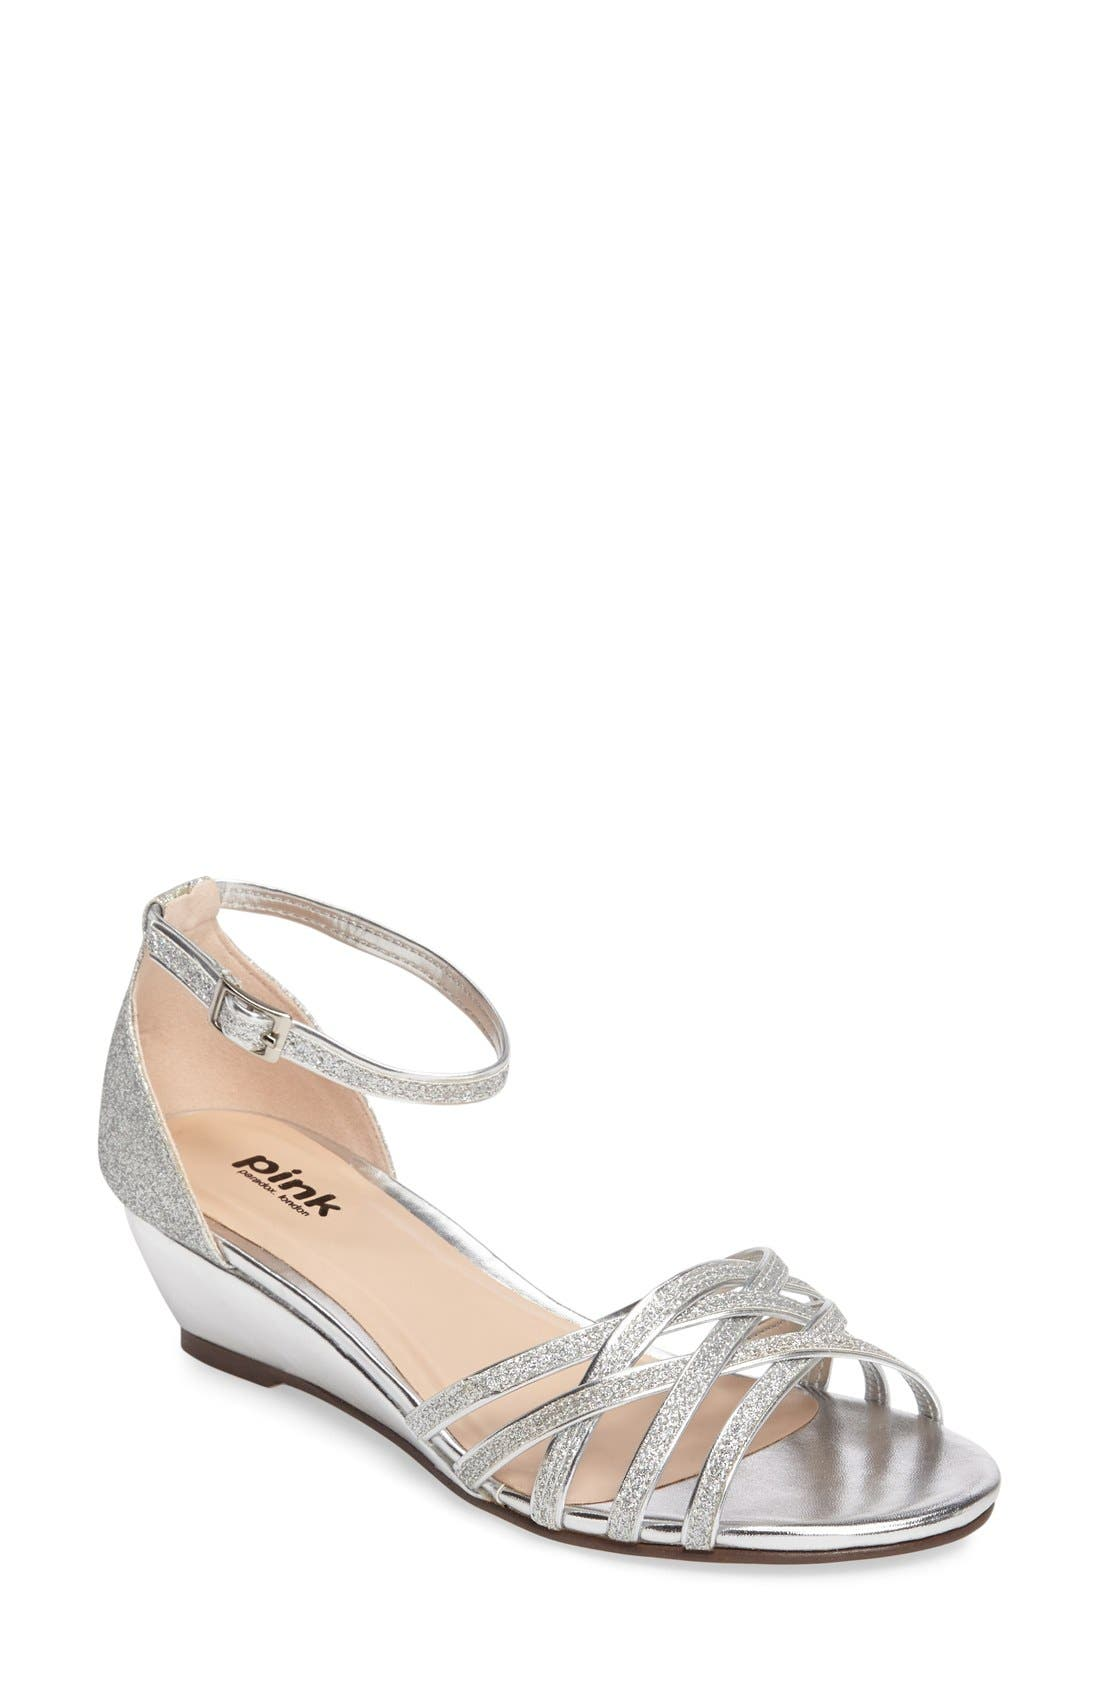 Avery Wedge Sandal,                             Main thumbnail 1, color,                             SILVER